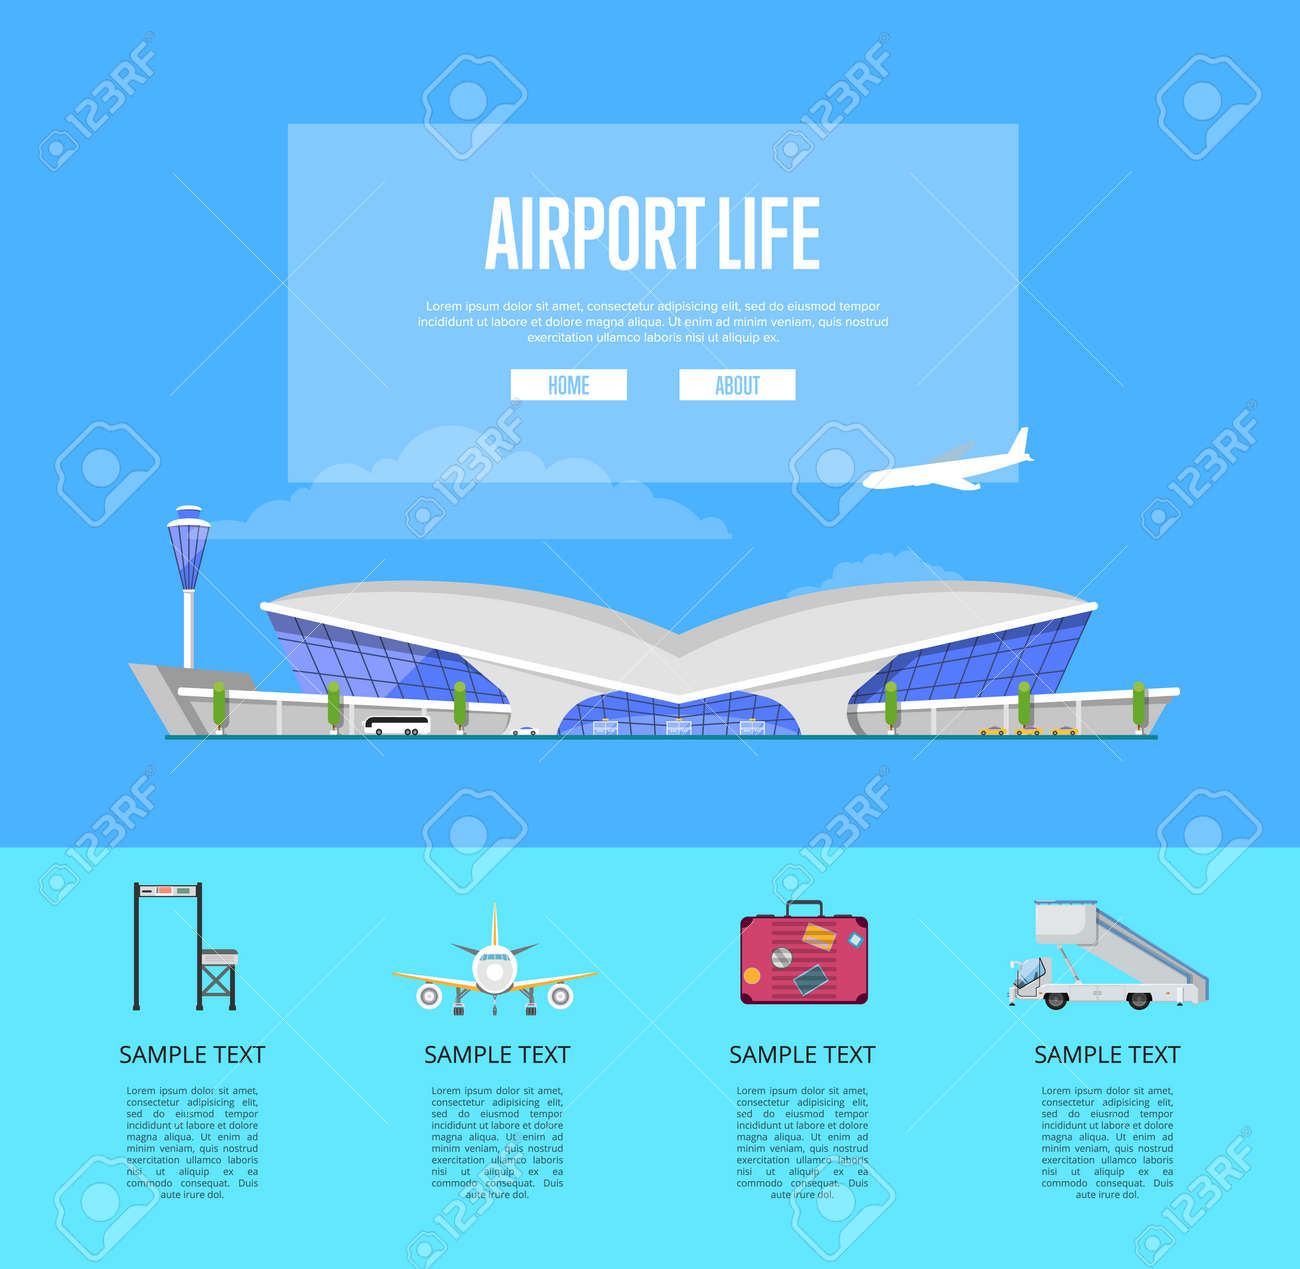 International passenger airport life guide template. Trendy glassy air  terminal with flight control tower vector